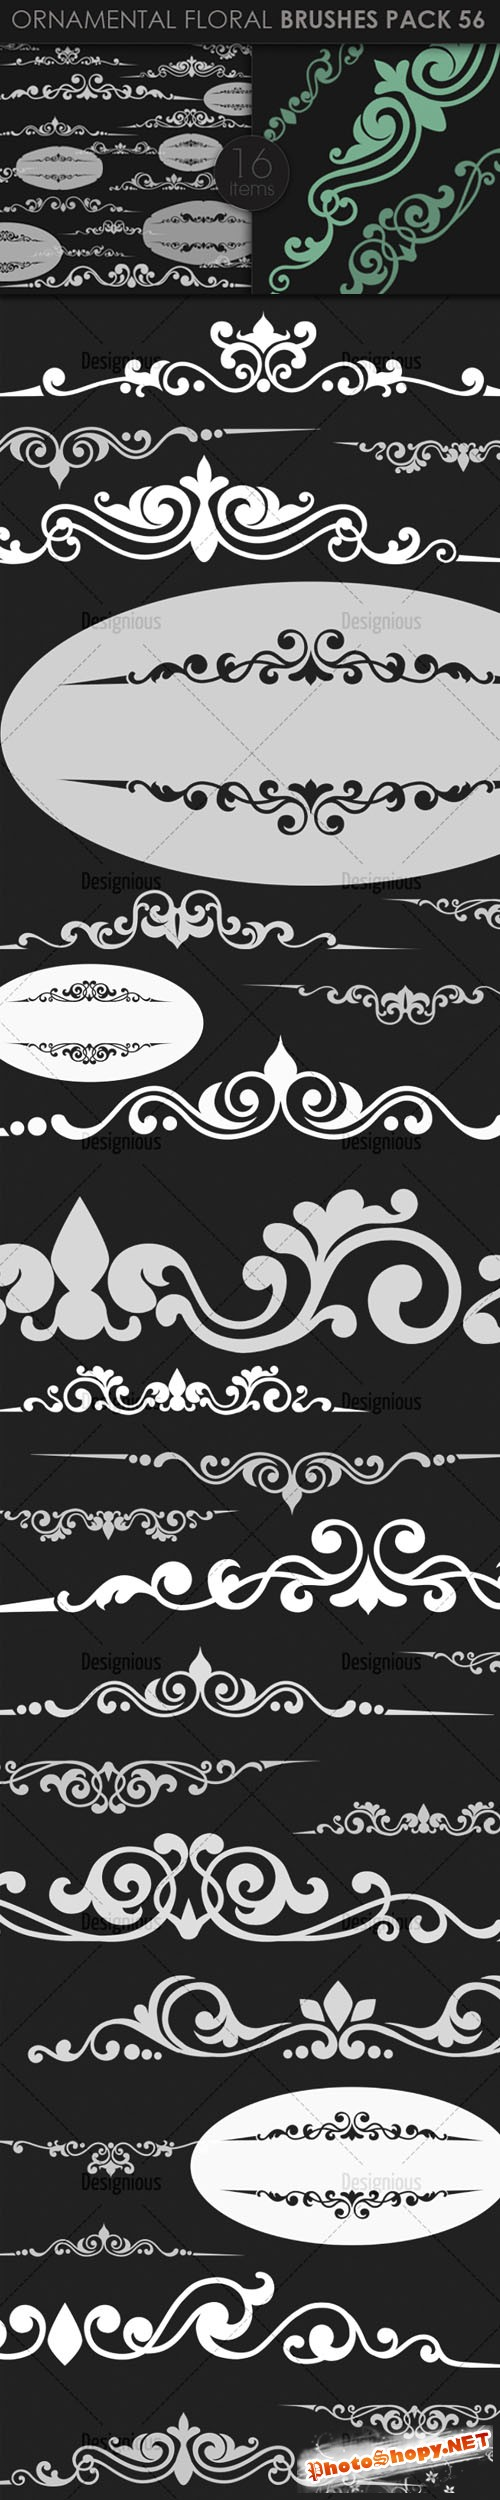 Ornamental Floral Photoshop Brushes Pack 56